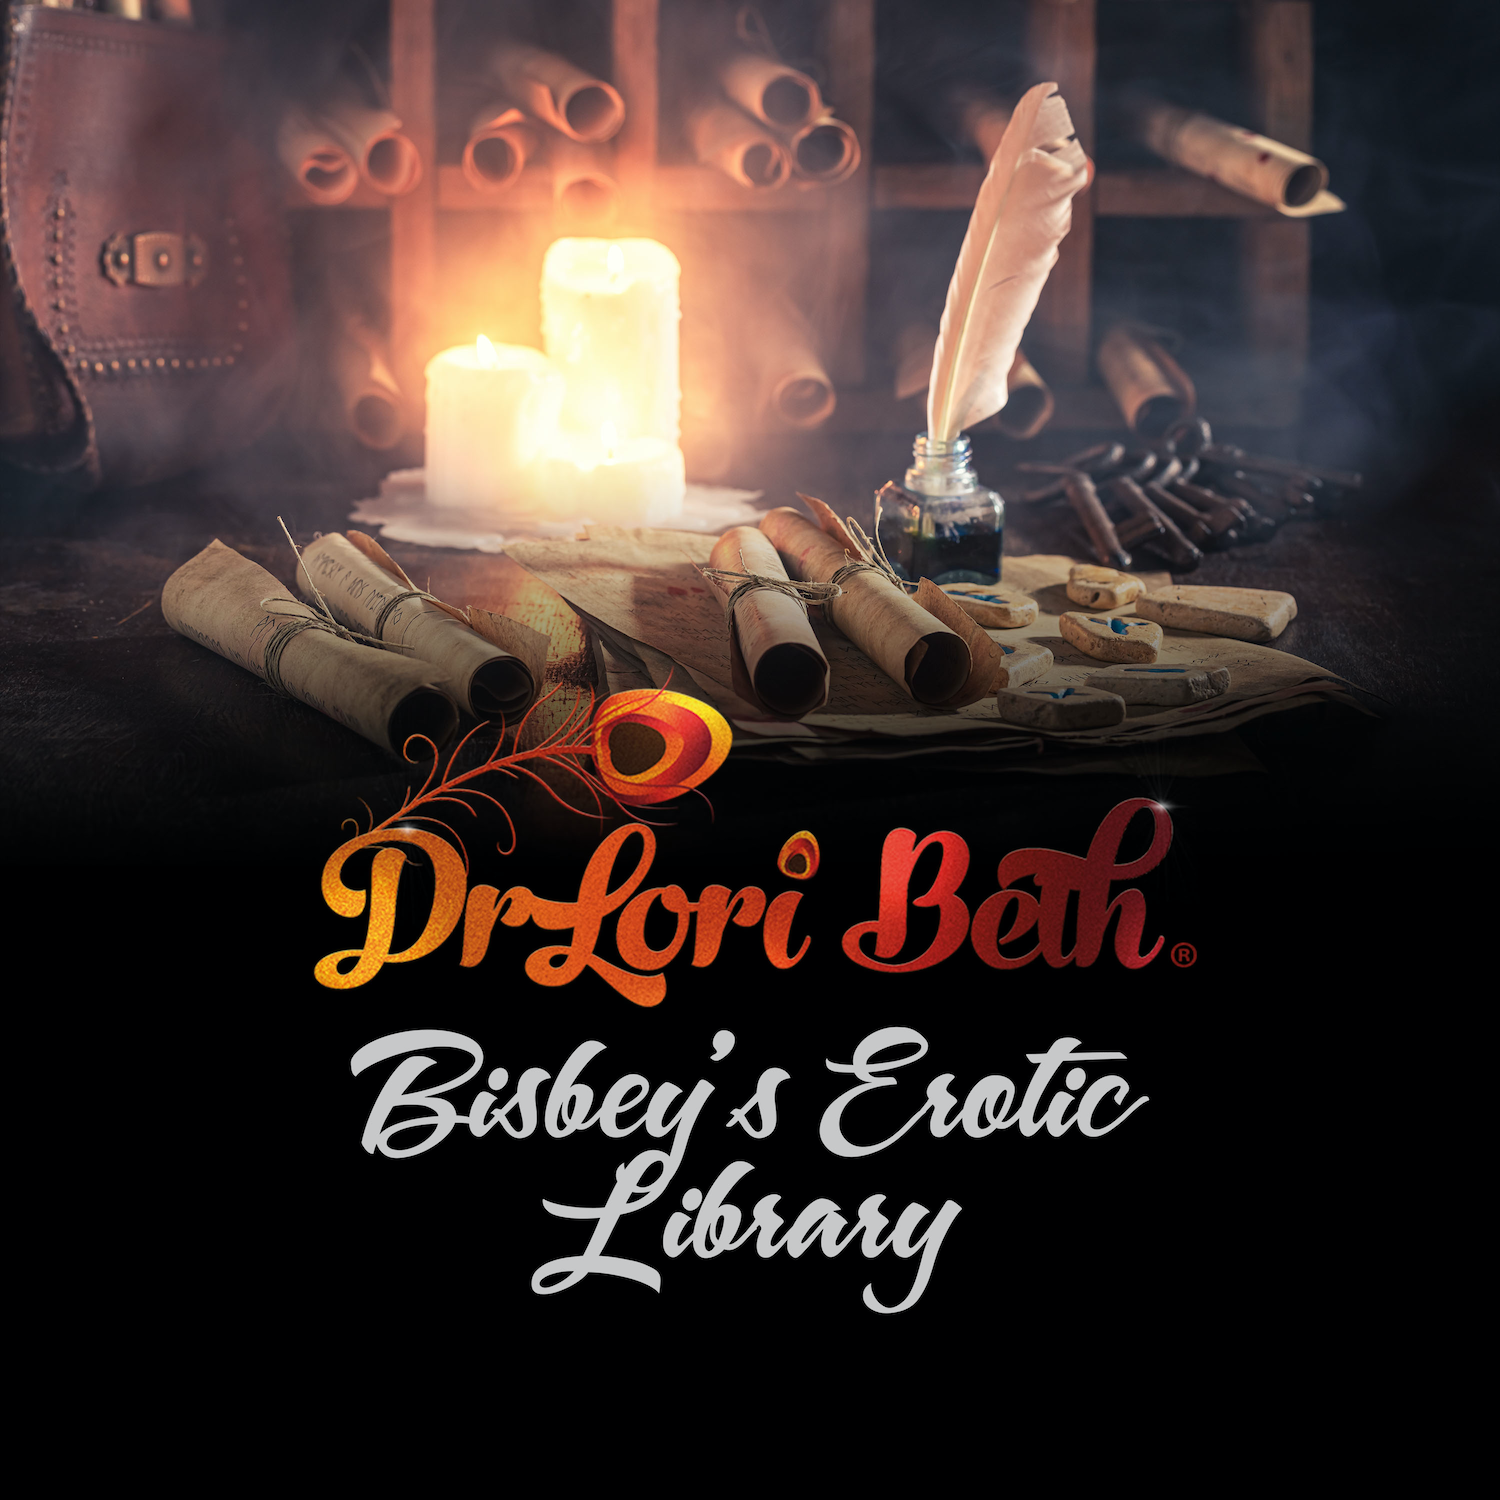 Dr Lori Beth Bisbey's Erotic Library